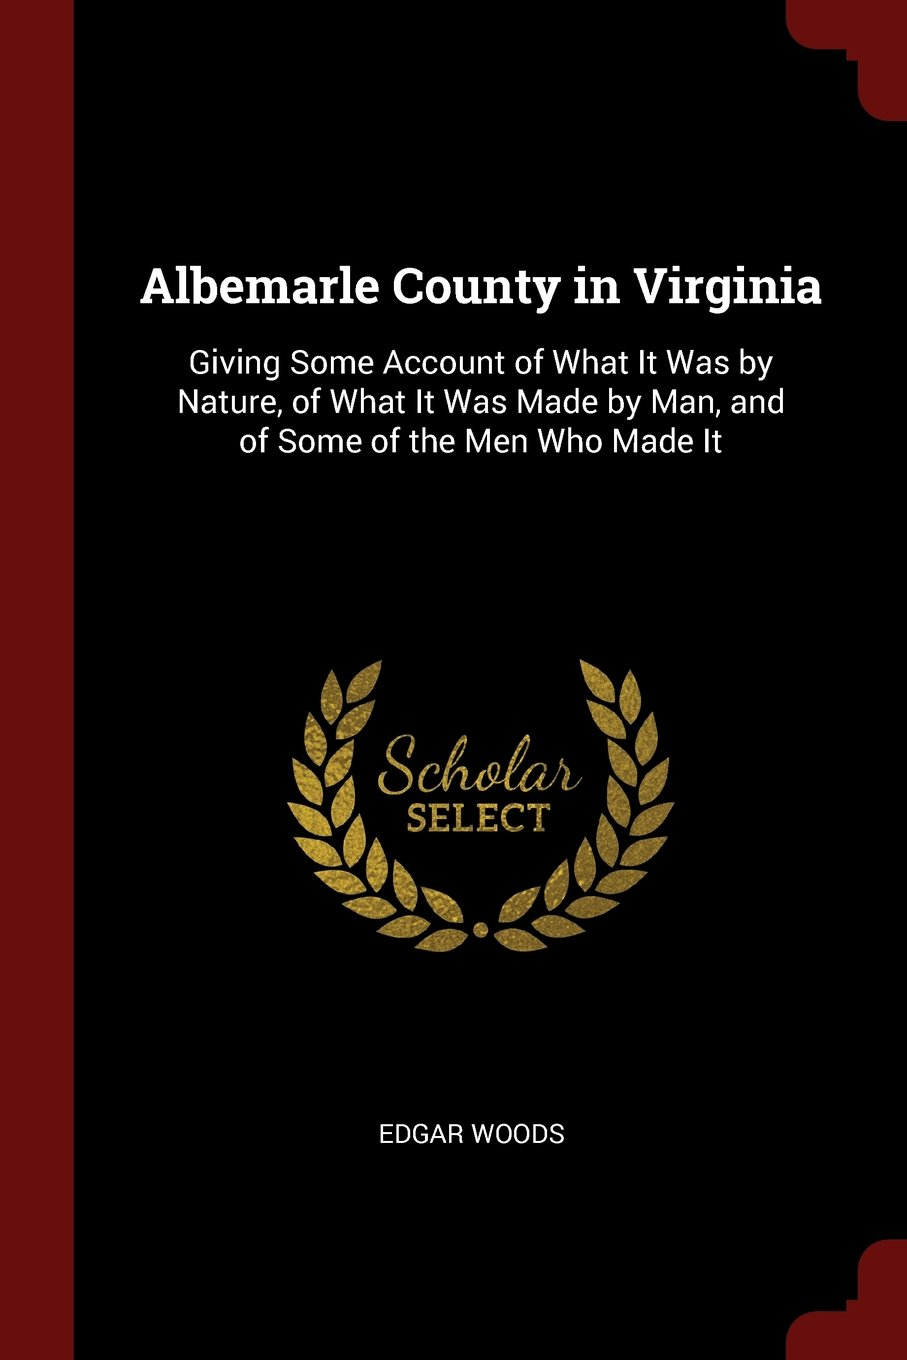 Albemarle County in Virginia: Giving Some Account of What It Was by Nature, of What It Was Made by Man, and of Some of the Men Who Made It pdf